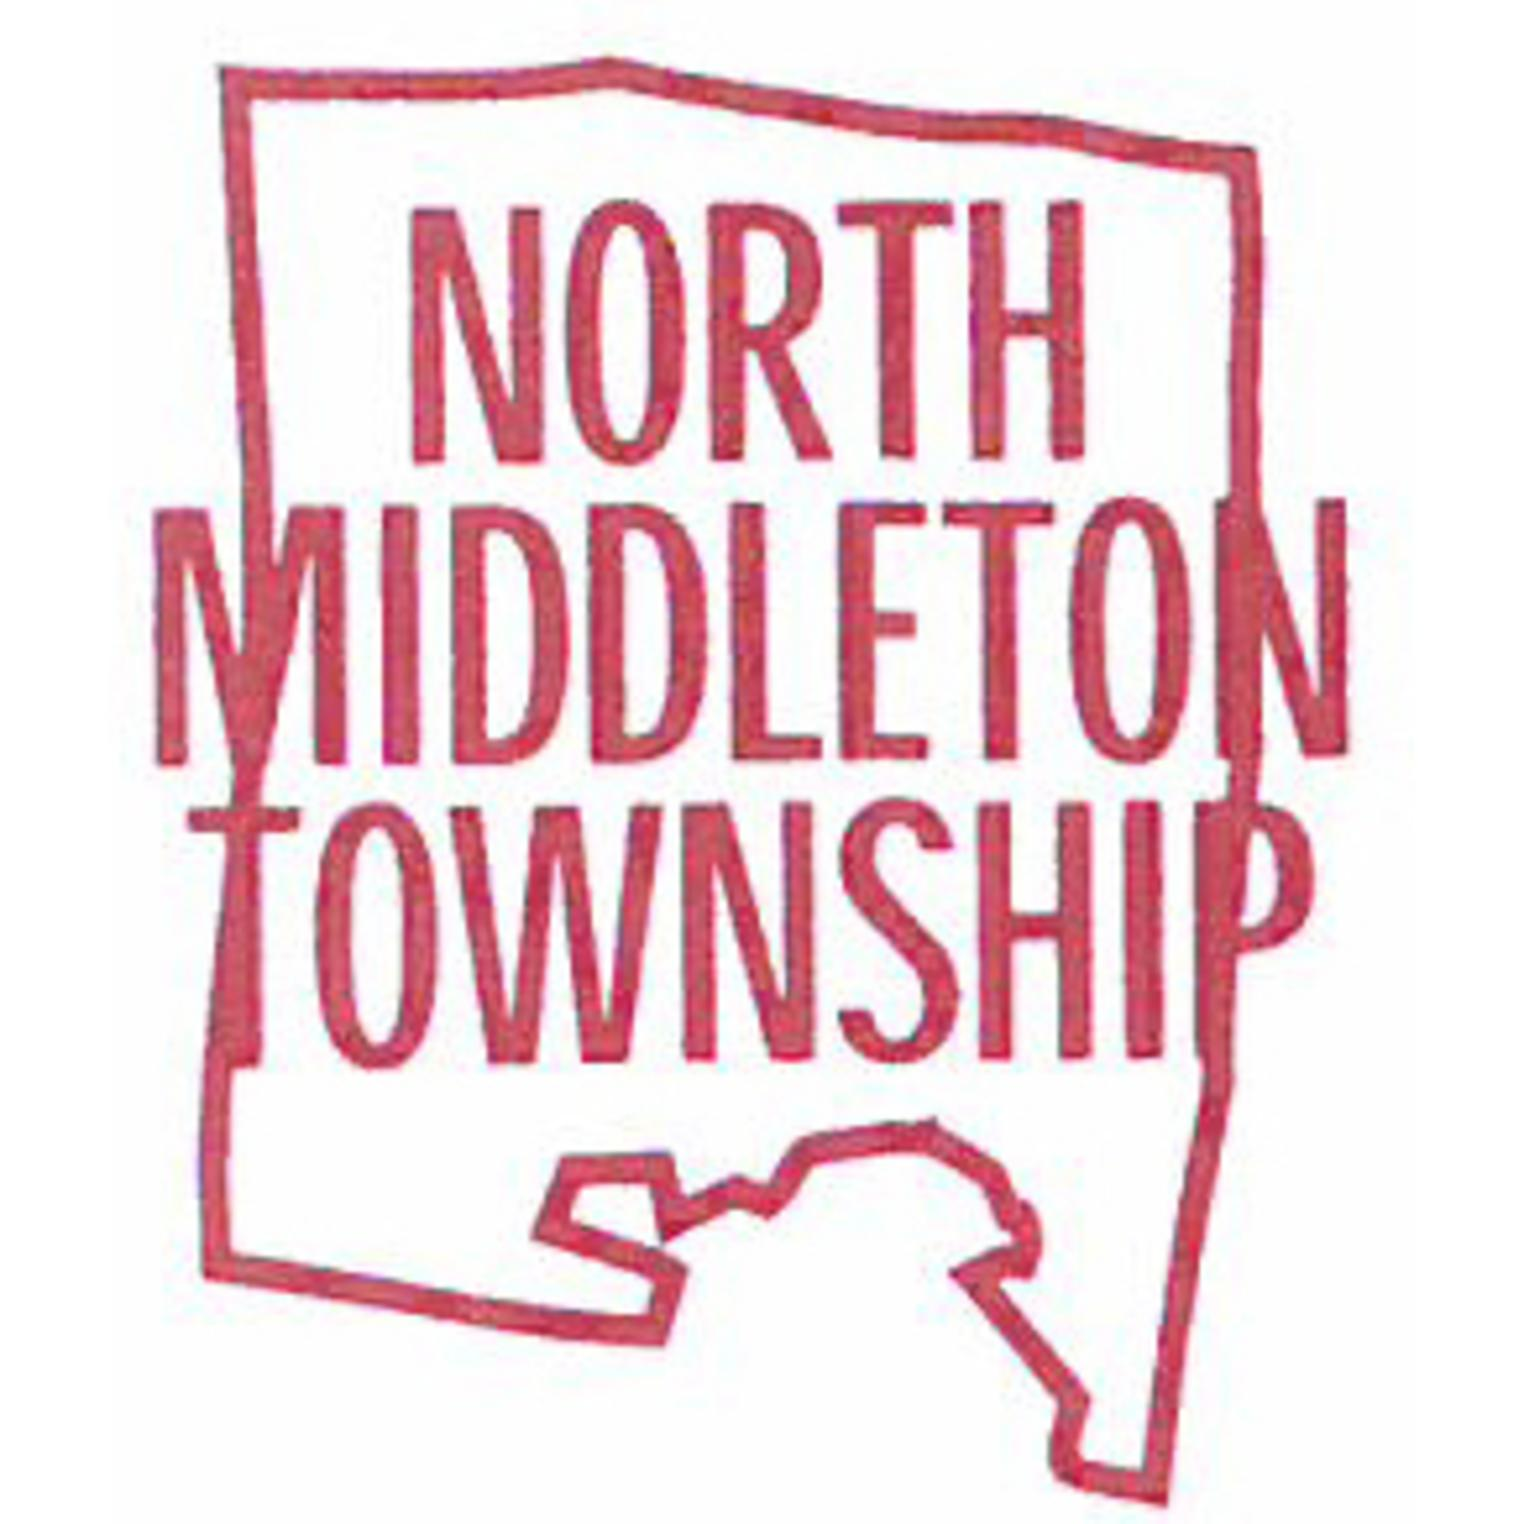 North Middleton Township